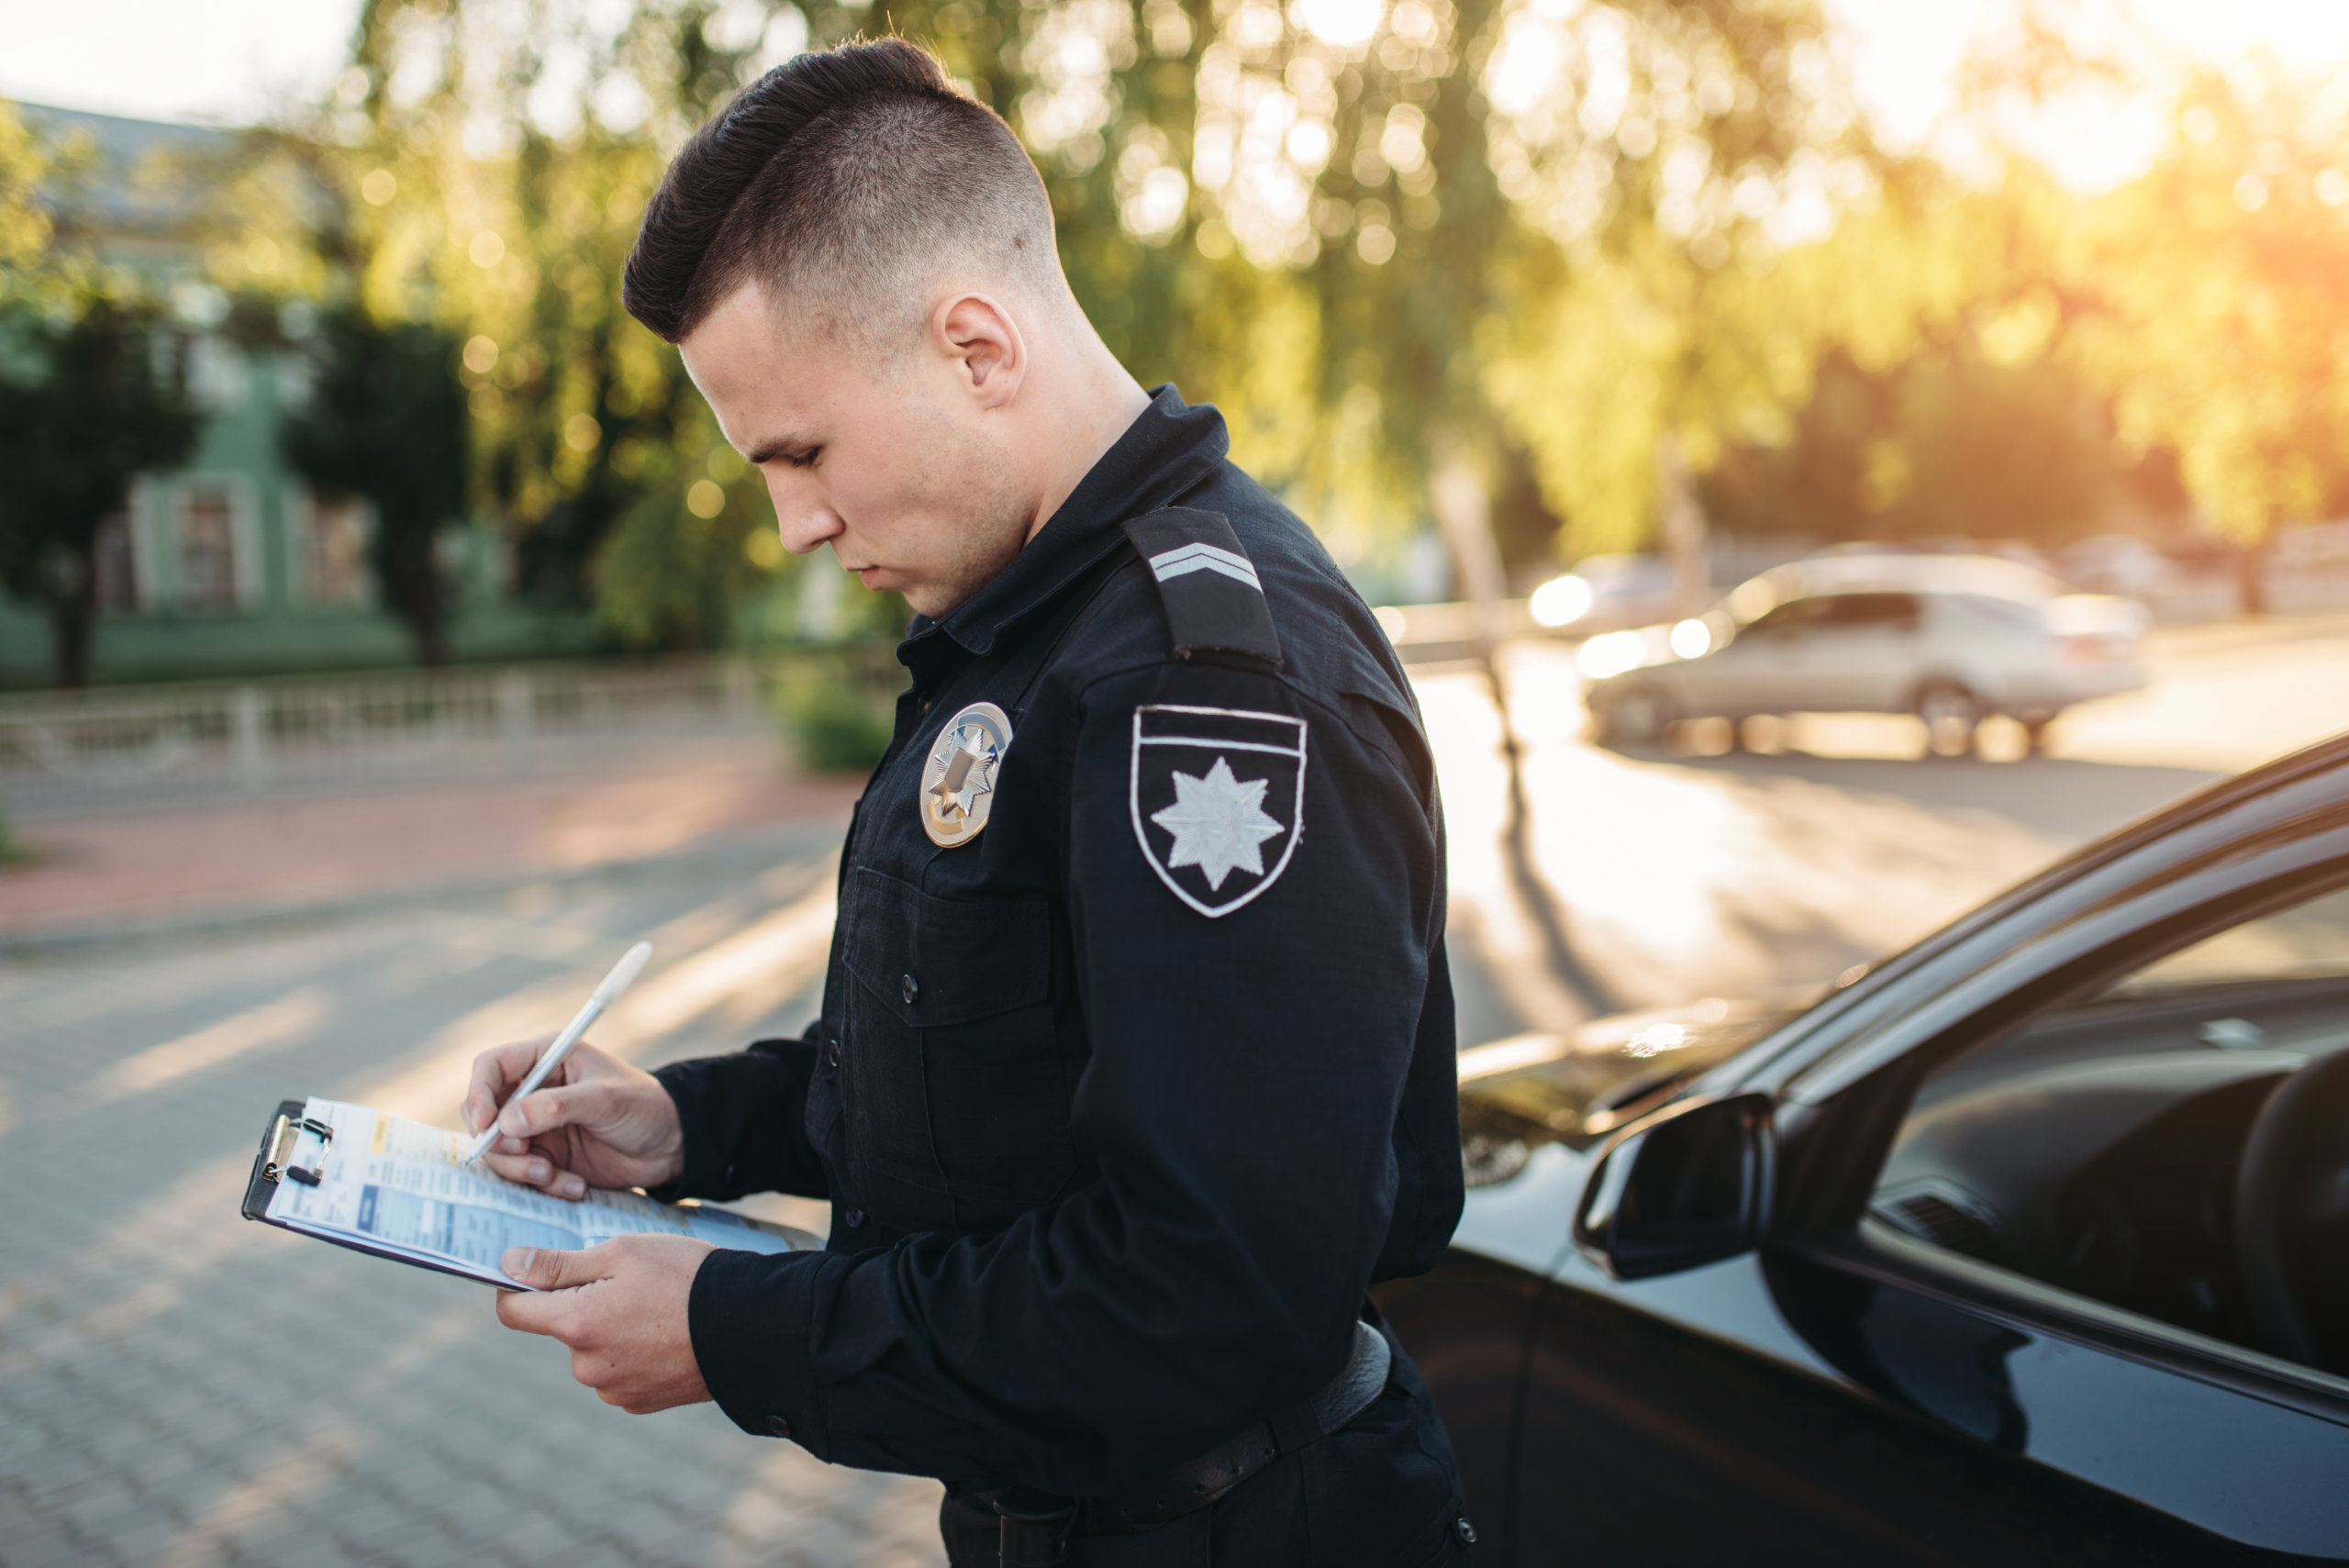 police background checks in cupertino